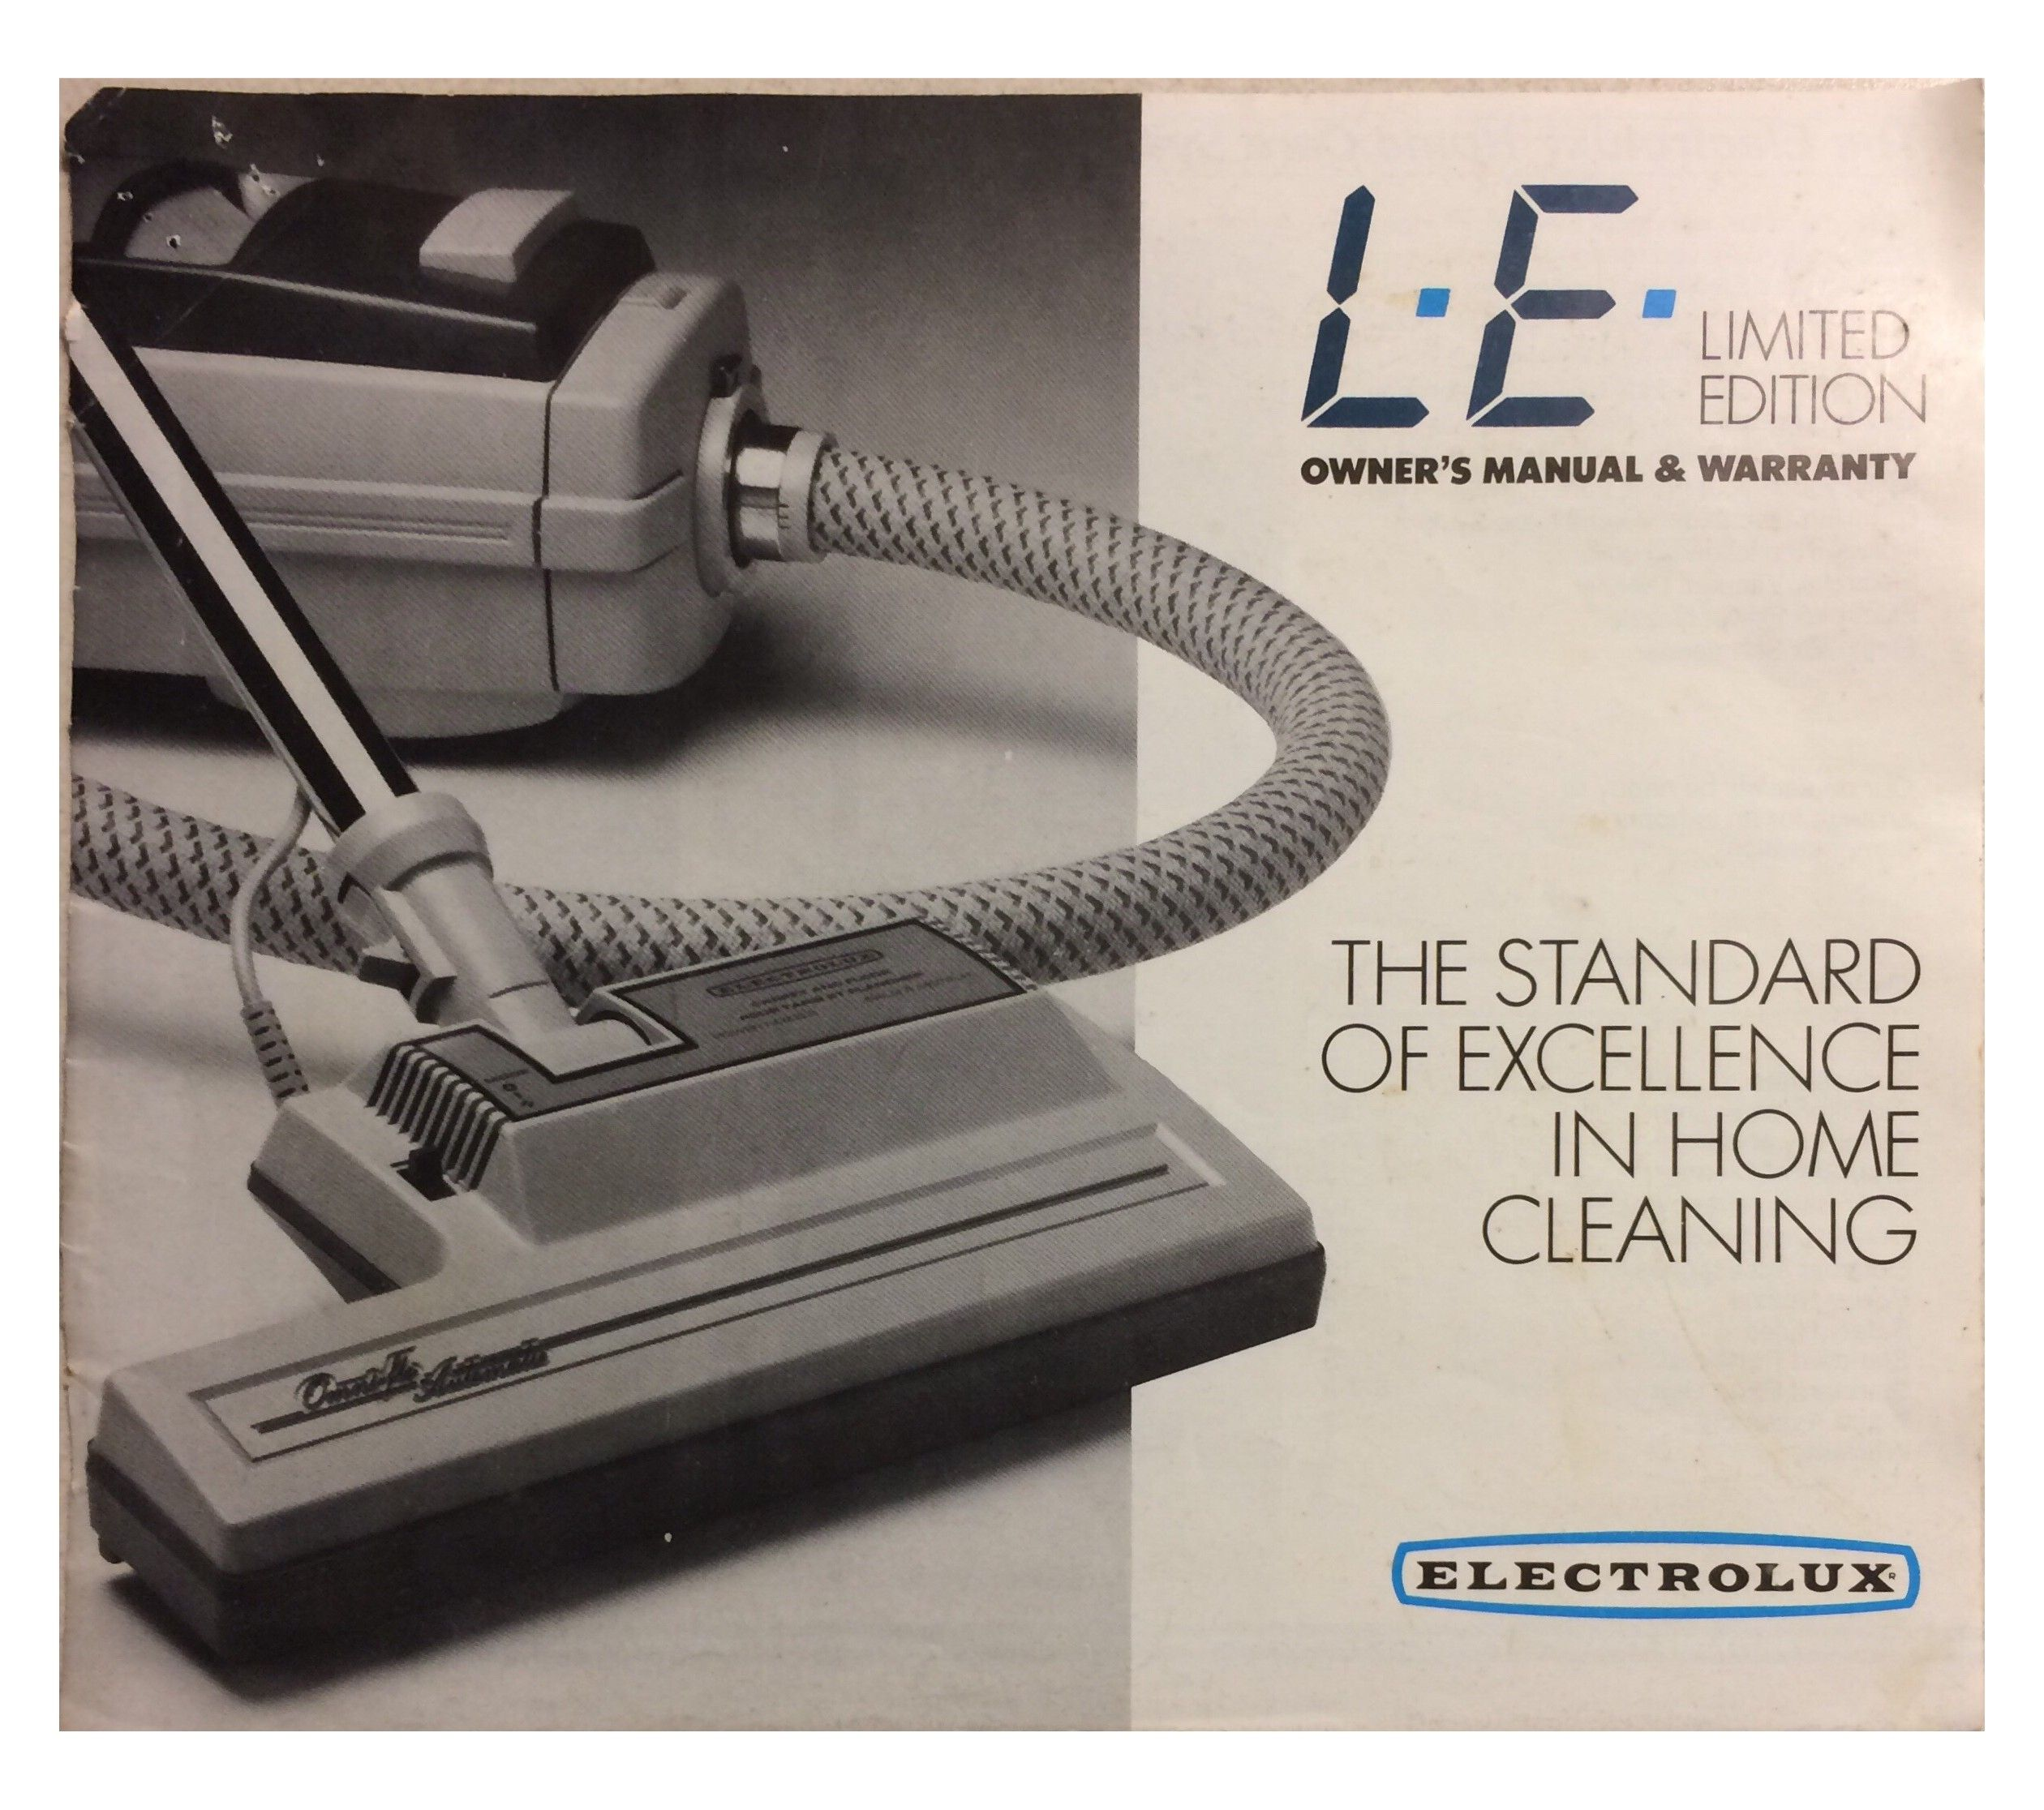 medium resolution of le electrolux limited edition vacuum cleaner manual pg 1